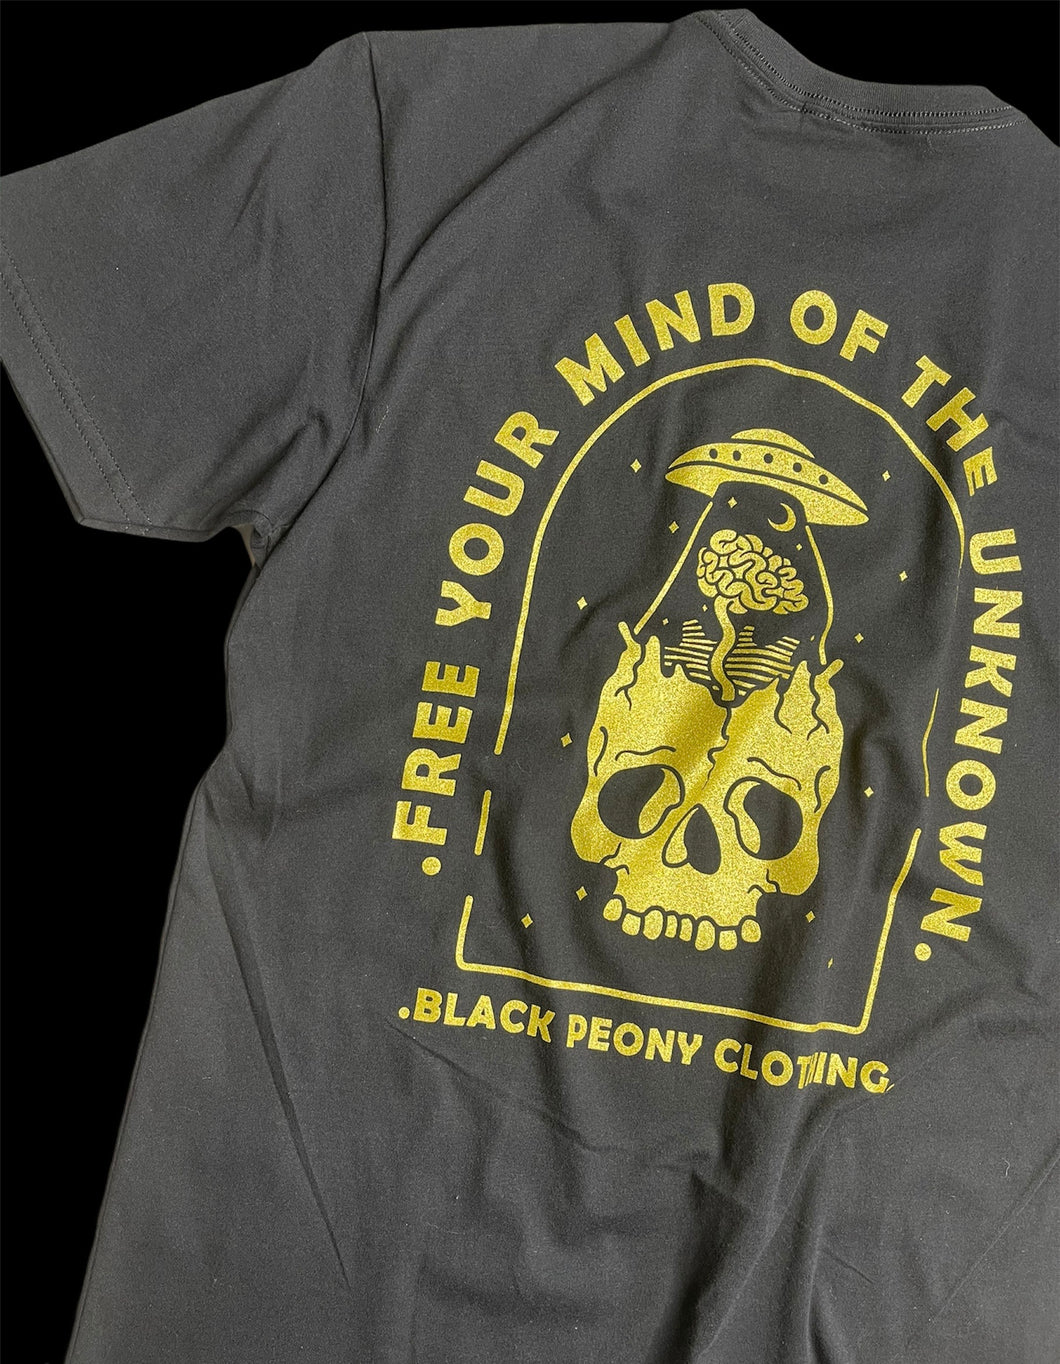 Free Your Mind Limited Edition 24K Tee